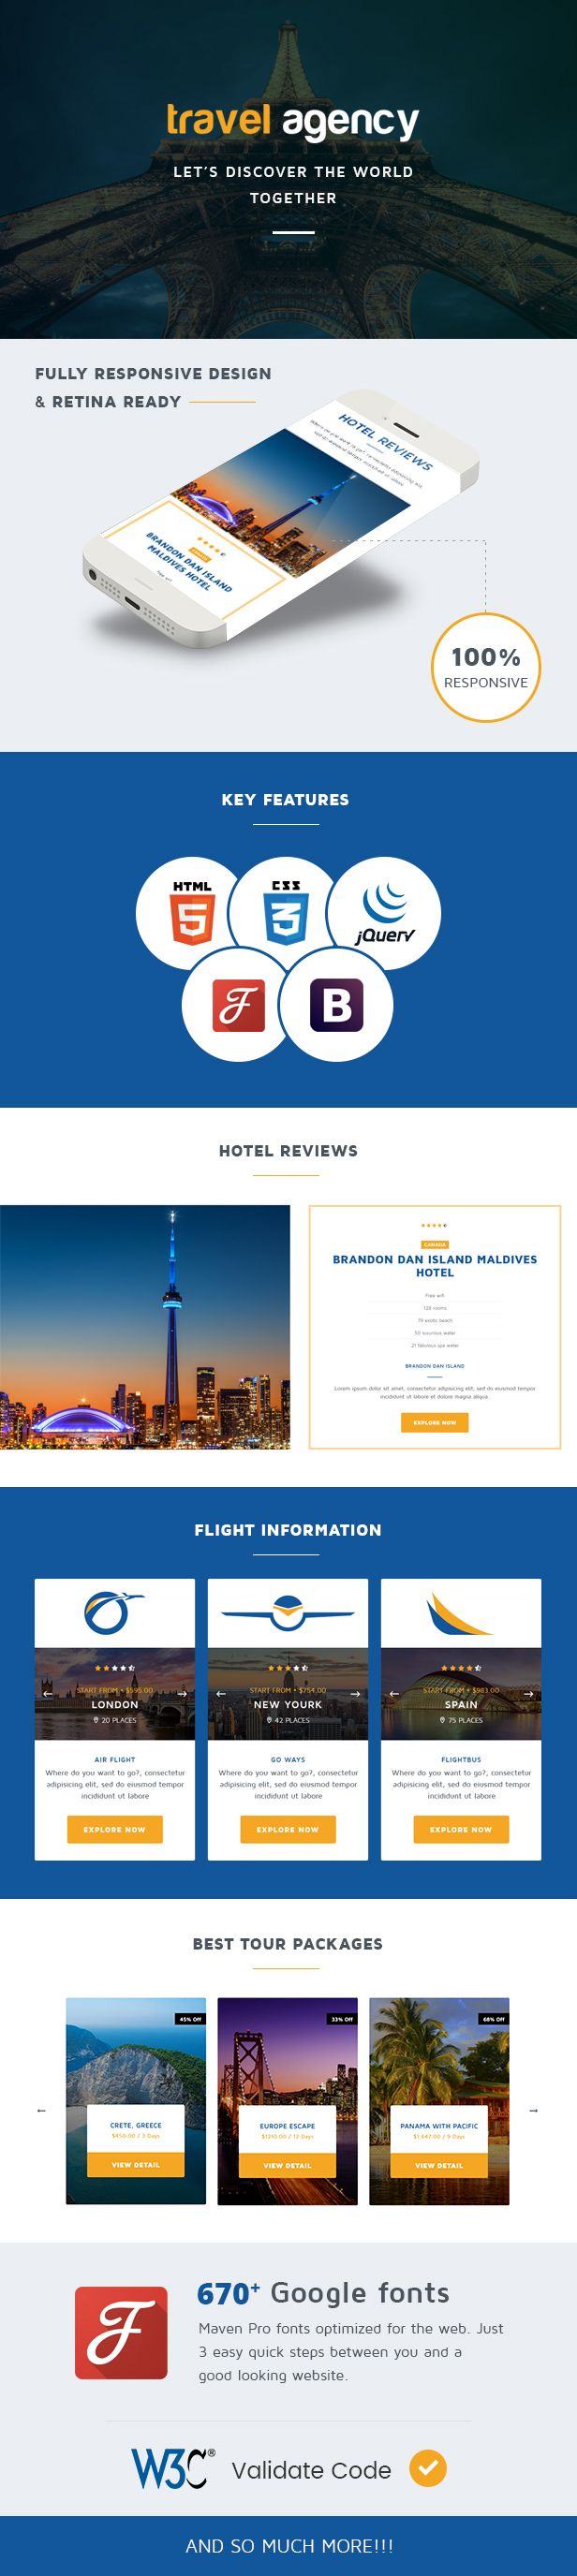 Travel Agency is one of the best travel & tour booking #Template. It's suitable for companies and agencies that provide hotel, car rental, flight, cruise and tour booking services. You will have tons of color skins, layout possibilities with unlimited variations and colors. Key features: - Future proof #HTML5 / #CSS3 code. - Fully #Responsive. - Scrolling #OnePage design. - #Parallax Content. Live Preview: http://travelagency.projectsmd.in/